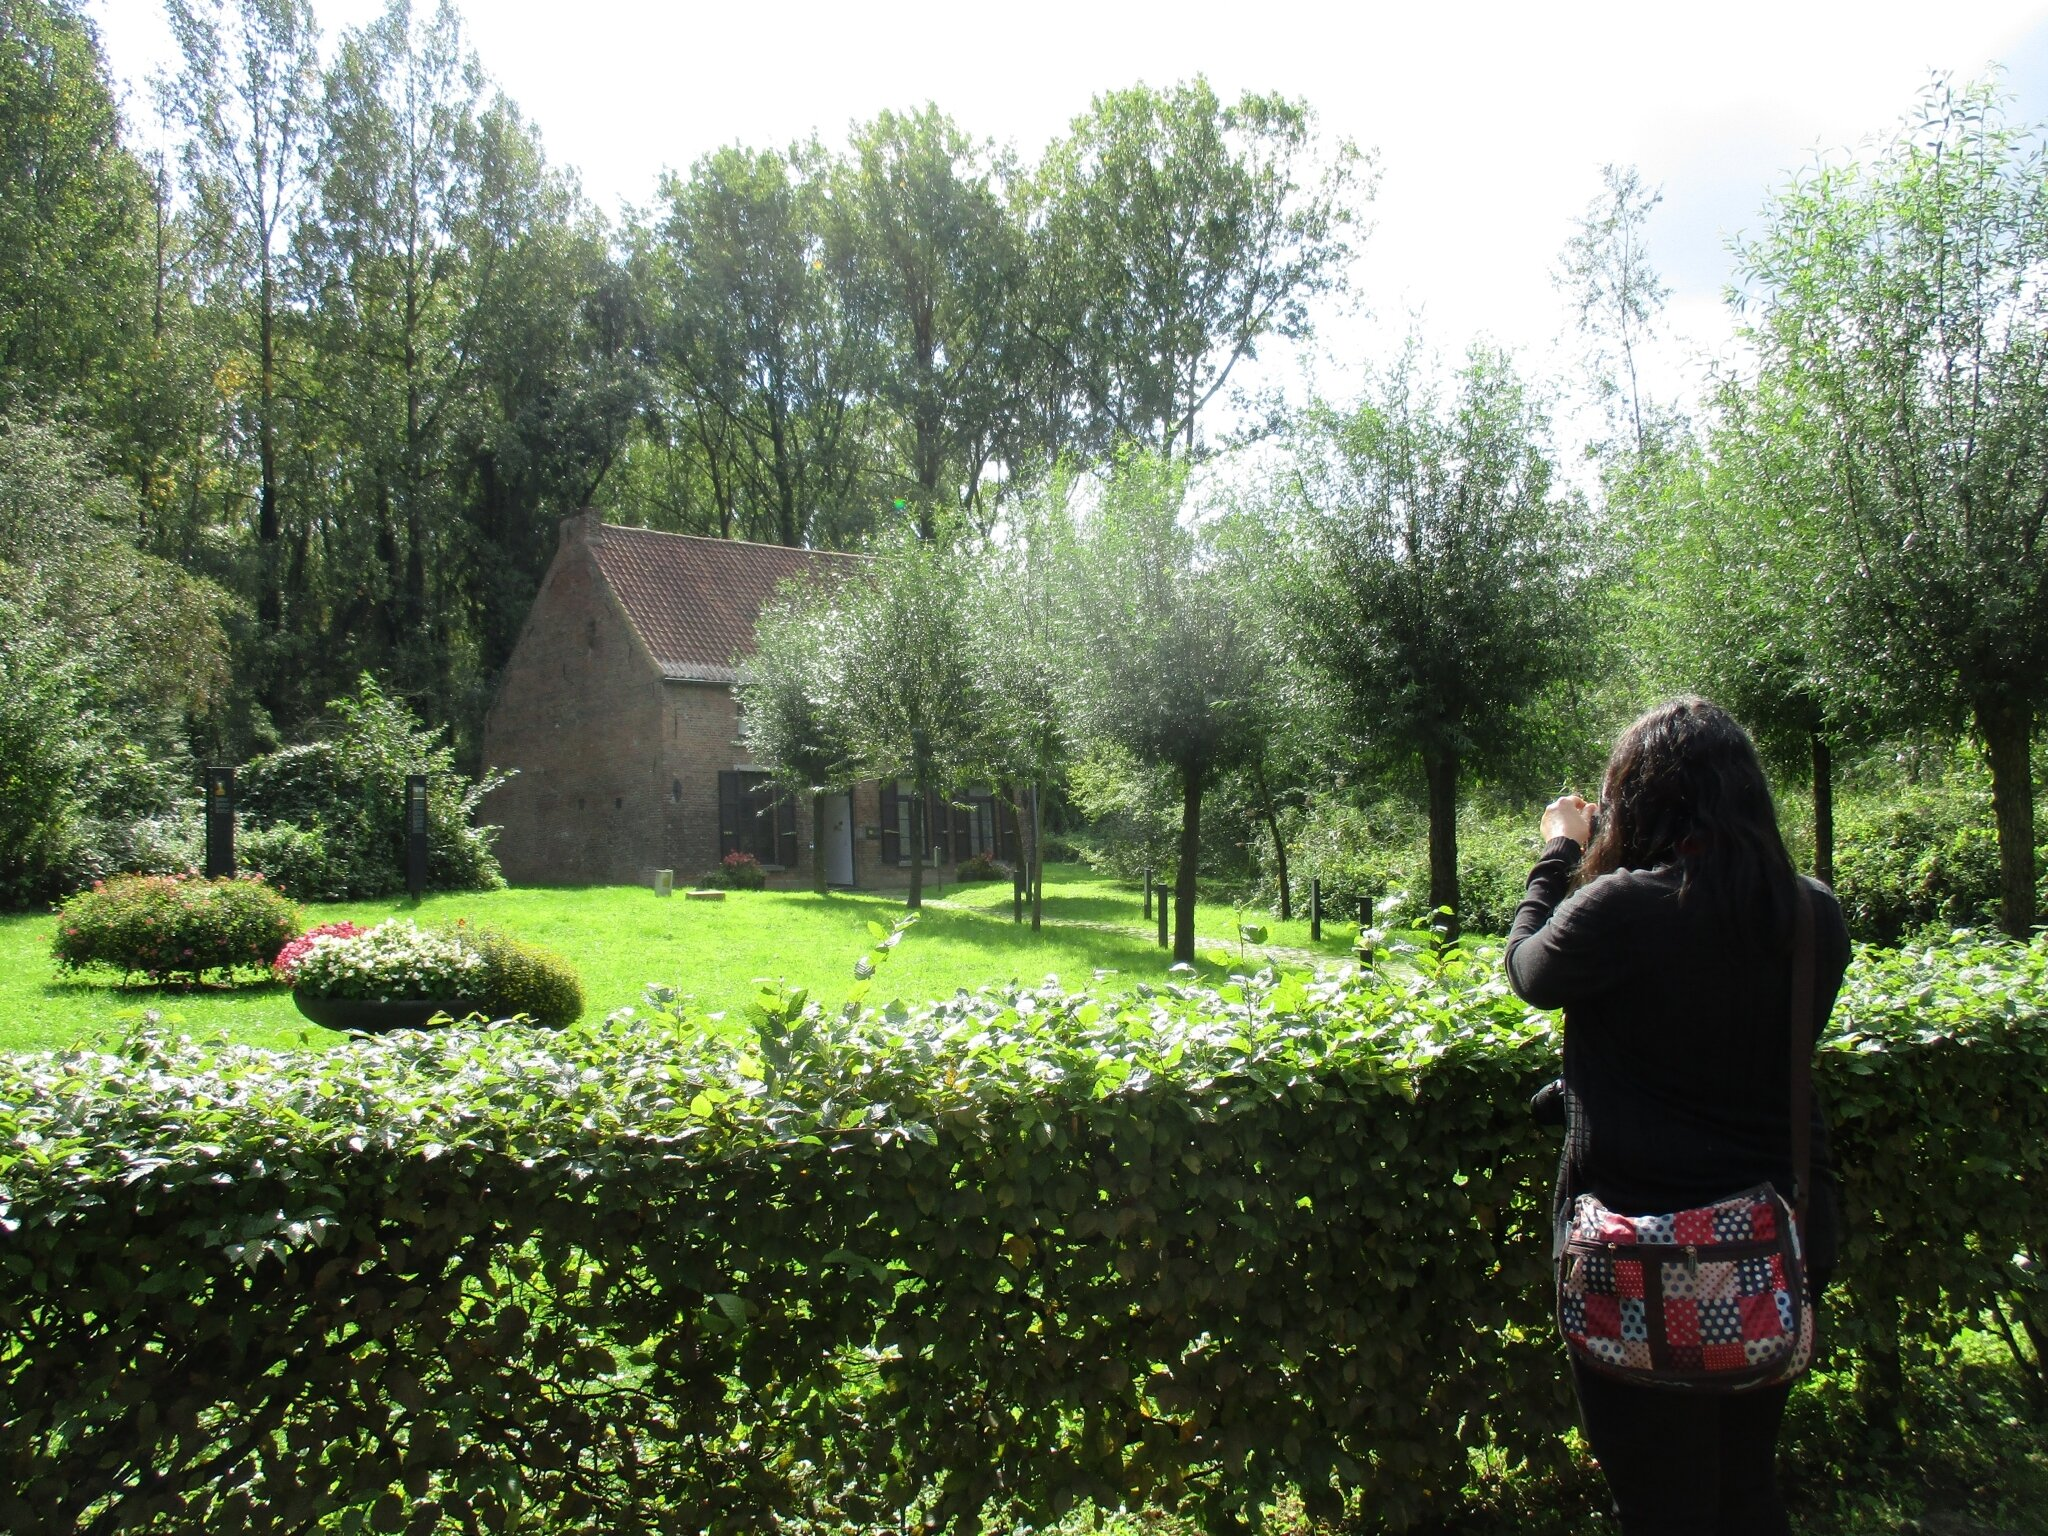 Wanderlustingk travel blog : Daytrips from Brussels - Vincent Van Gogh in Belgium and the Borinage